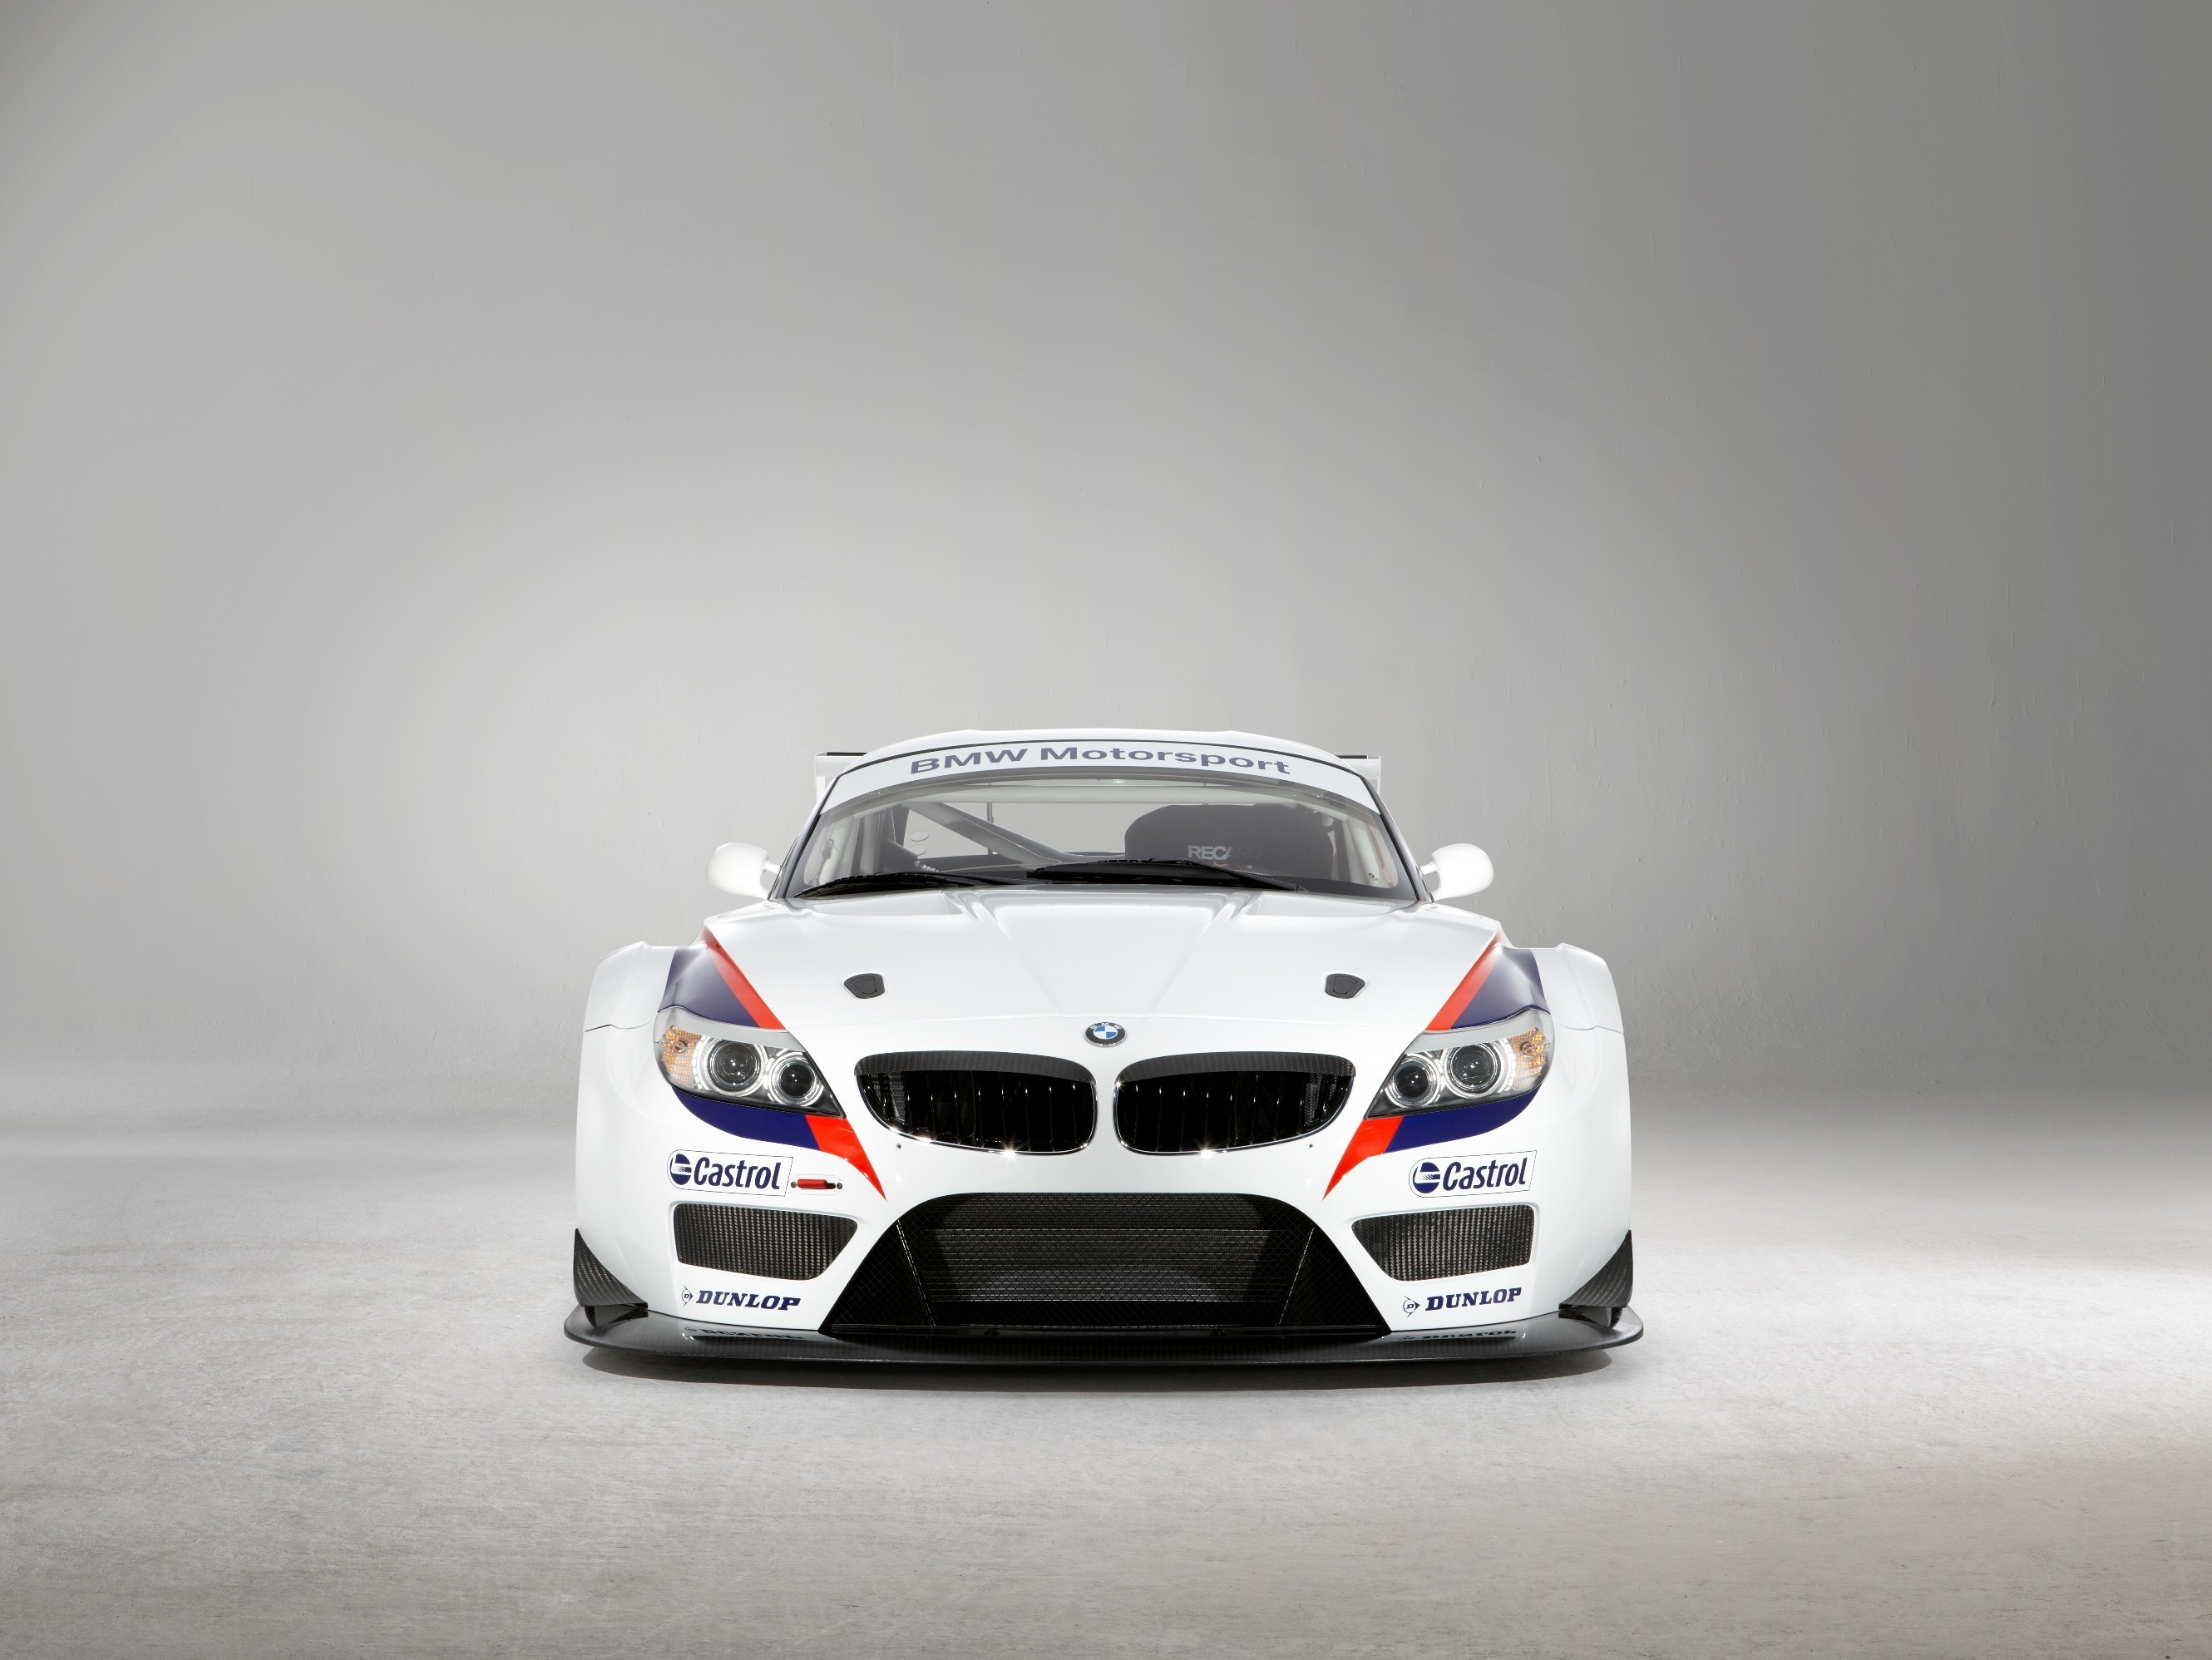 More High Res Pictures Of The Bmw Z4 E89 After Gt3 Regulations